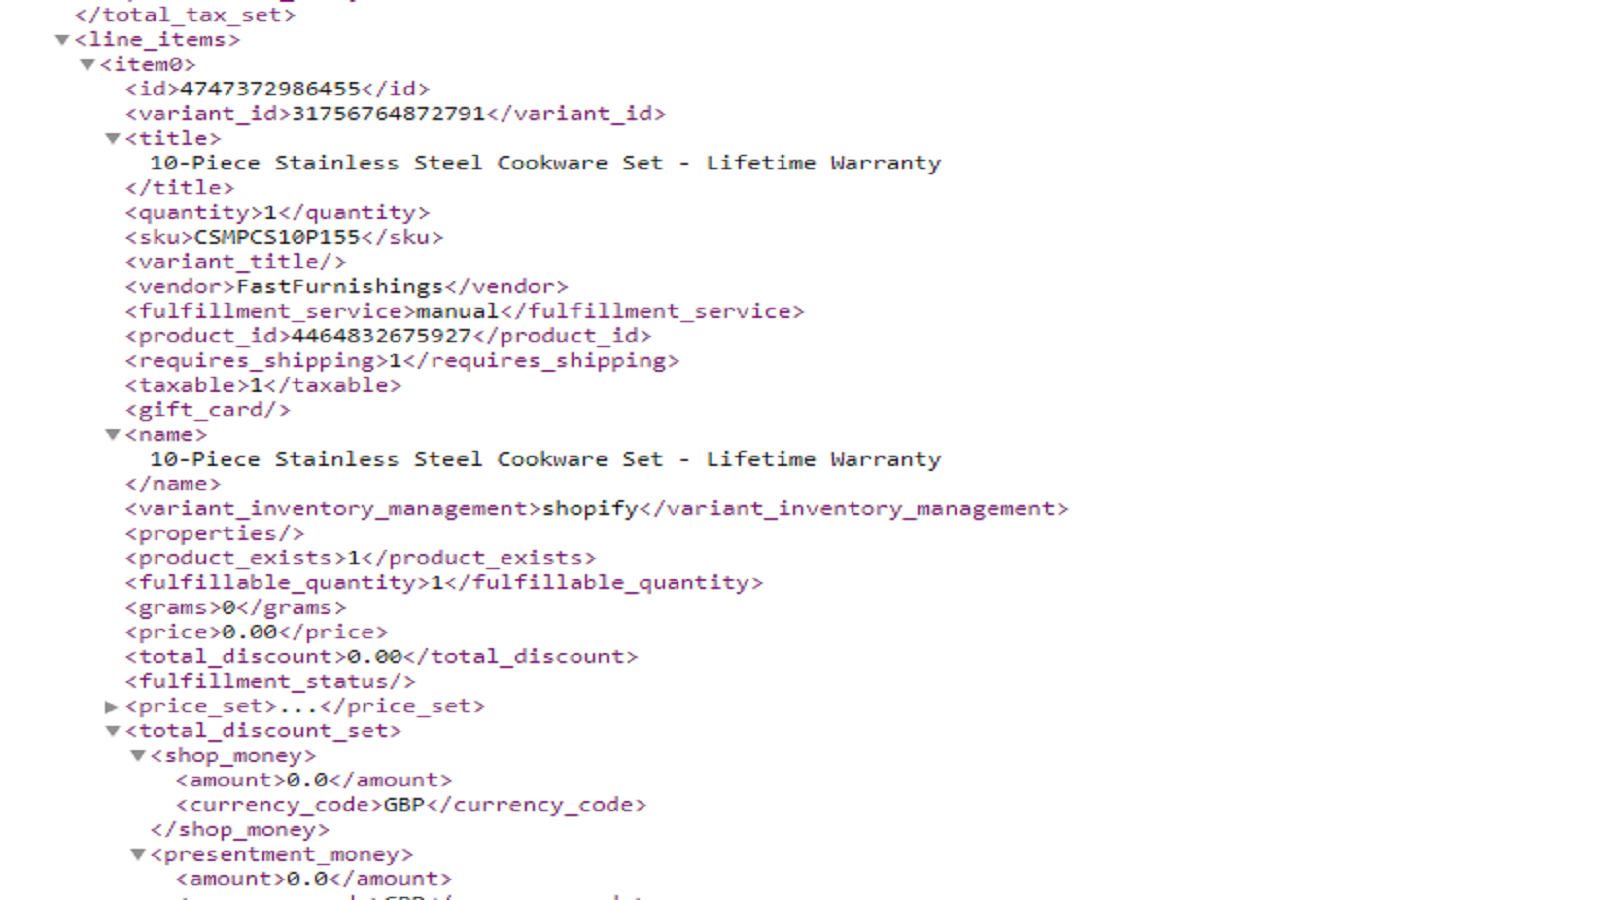 Order products xml feed